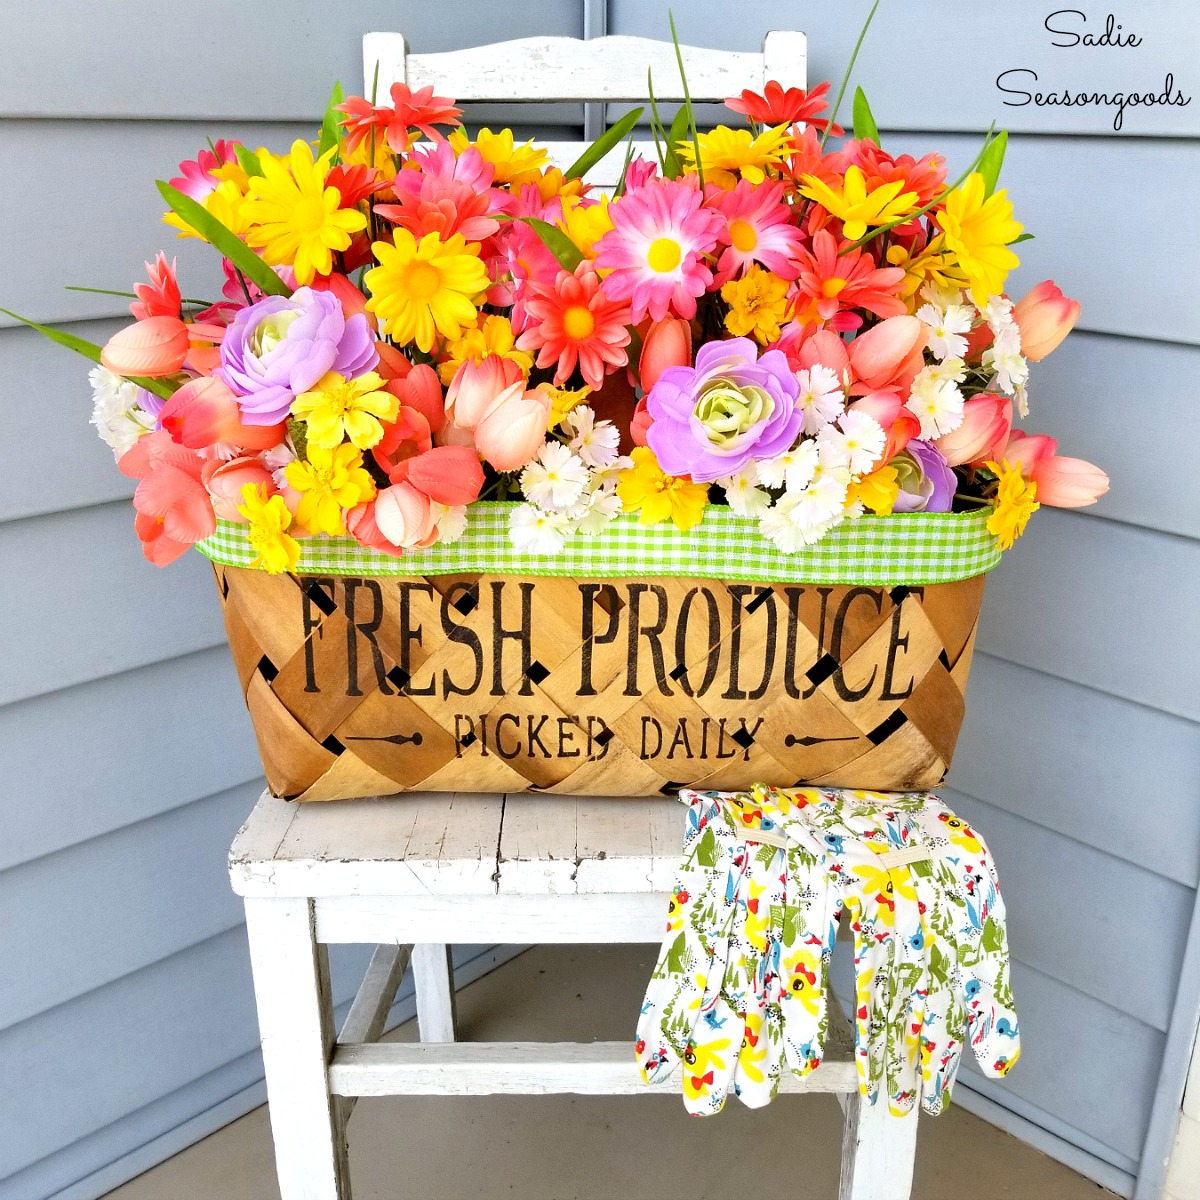 Harvest Basket Upcycled into Flower Basket for Front Porch Decor